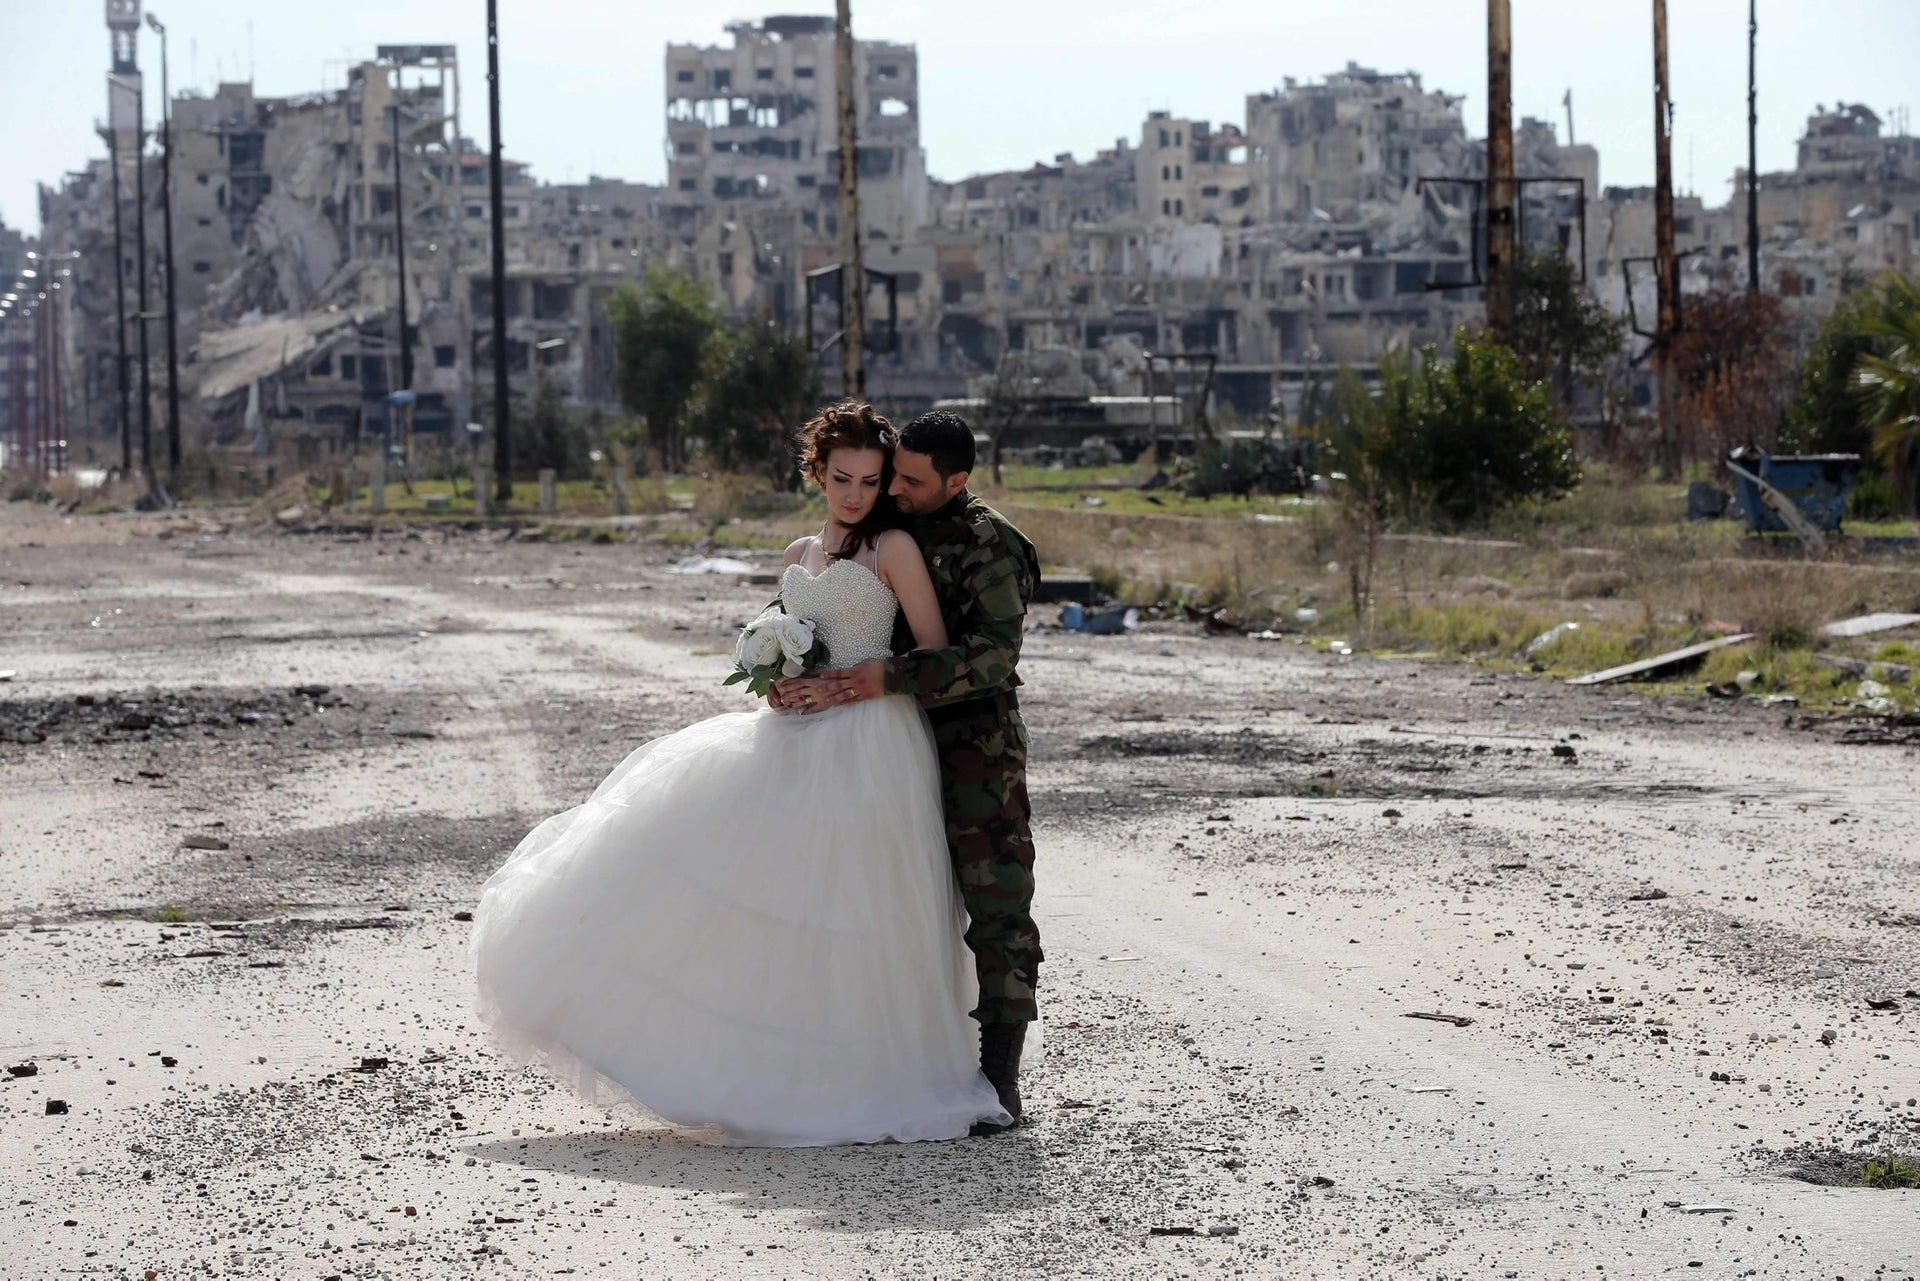 A tender moment for newlyweds Nada Merhi and Hassan Youssef in the ruined Syrian city of Homs on February 5, 2016.